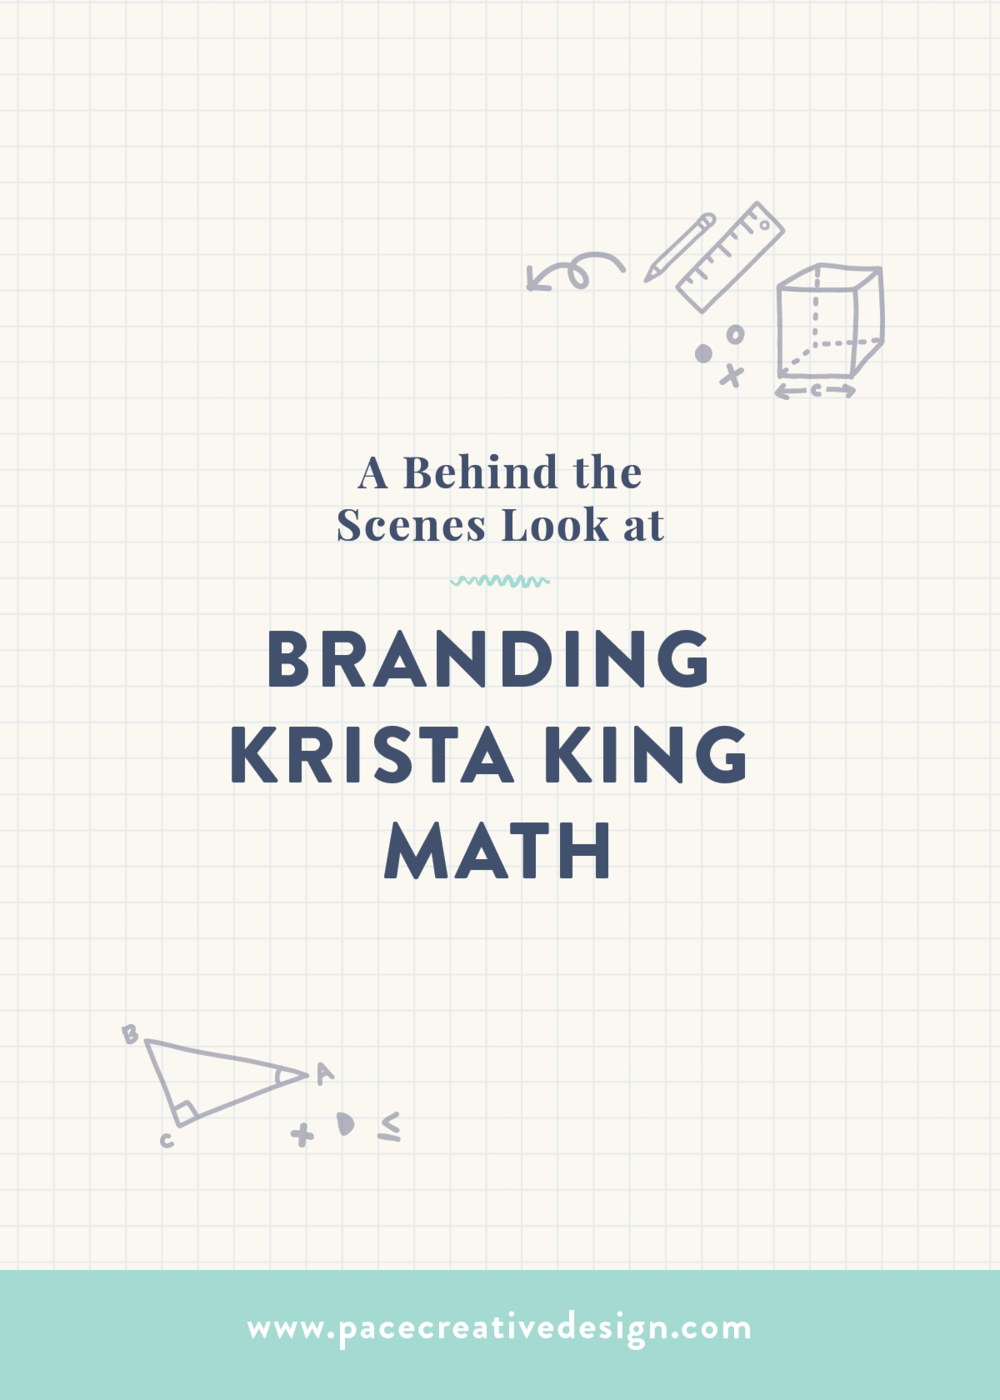 Krista King Math brand design | Created in collaboration between Spruce Rd. and Pace Creative Design Studio